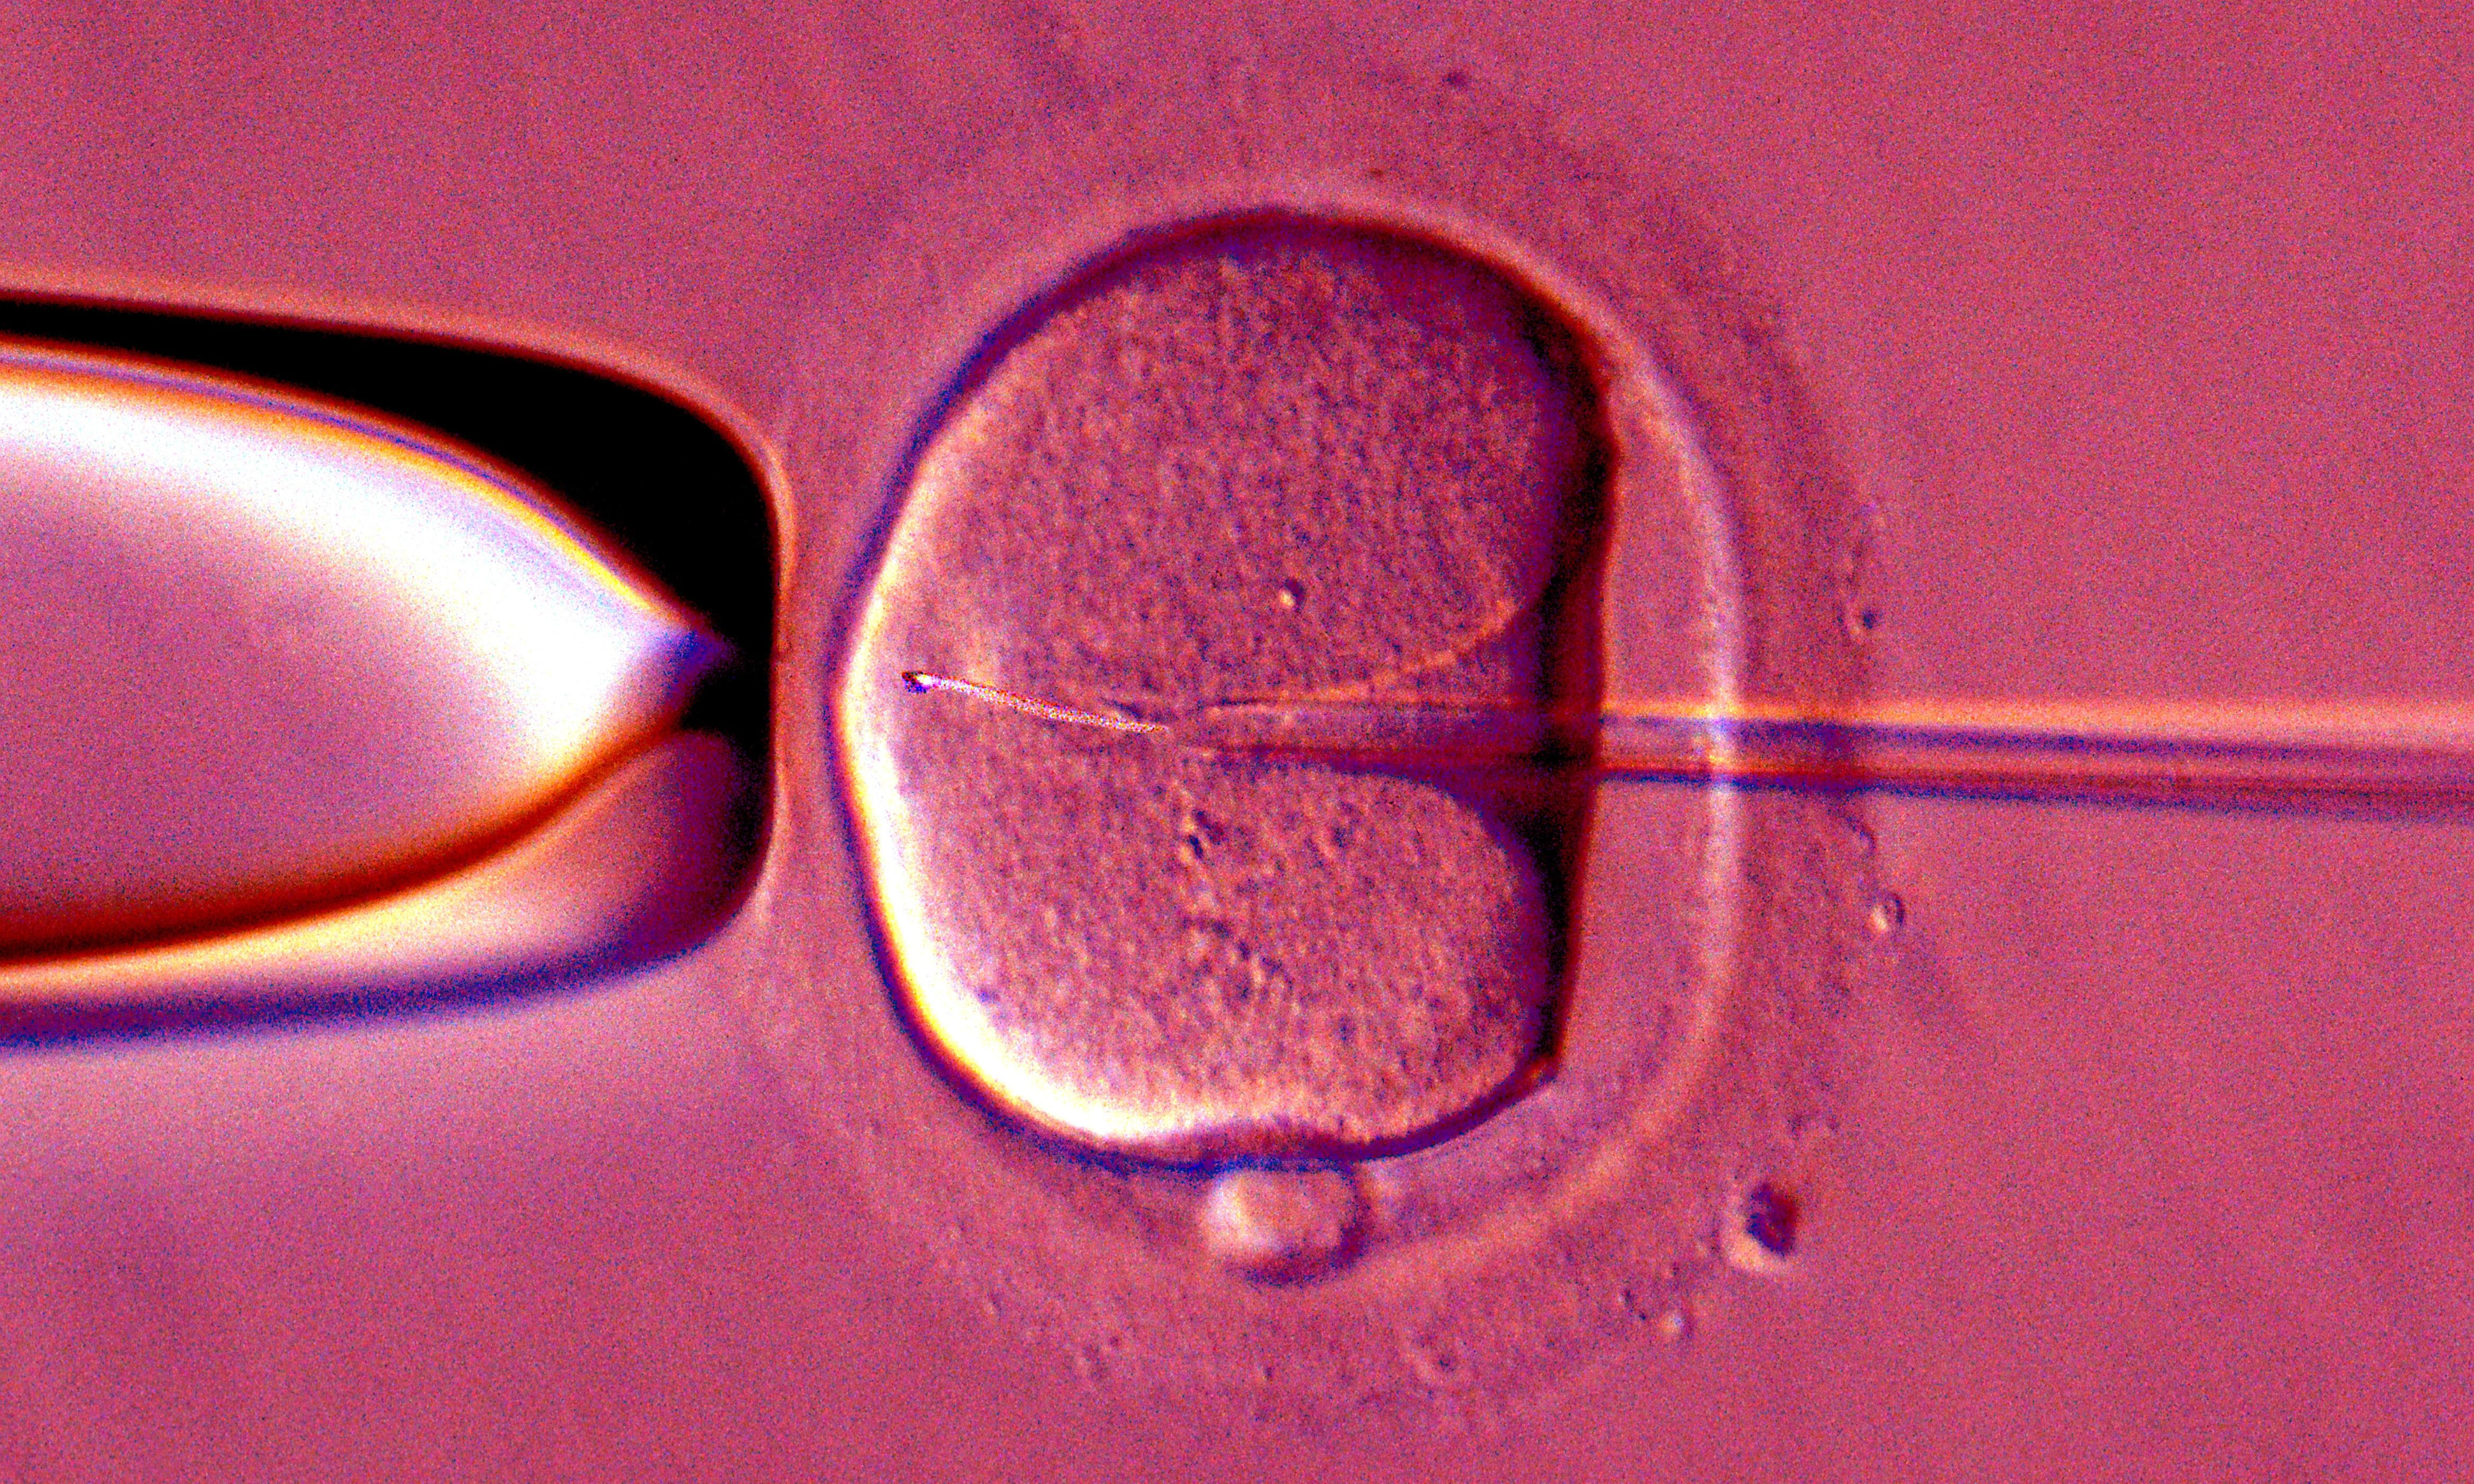 Have sperm will travel. But what would an all-female planet look like?